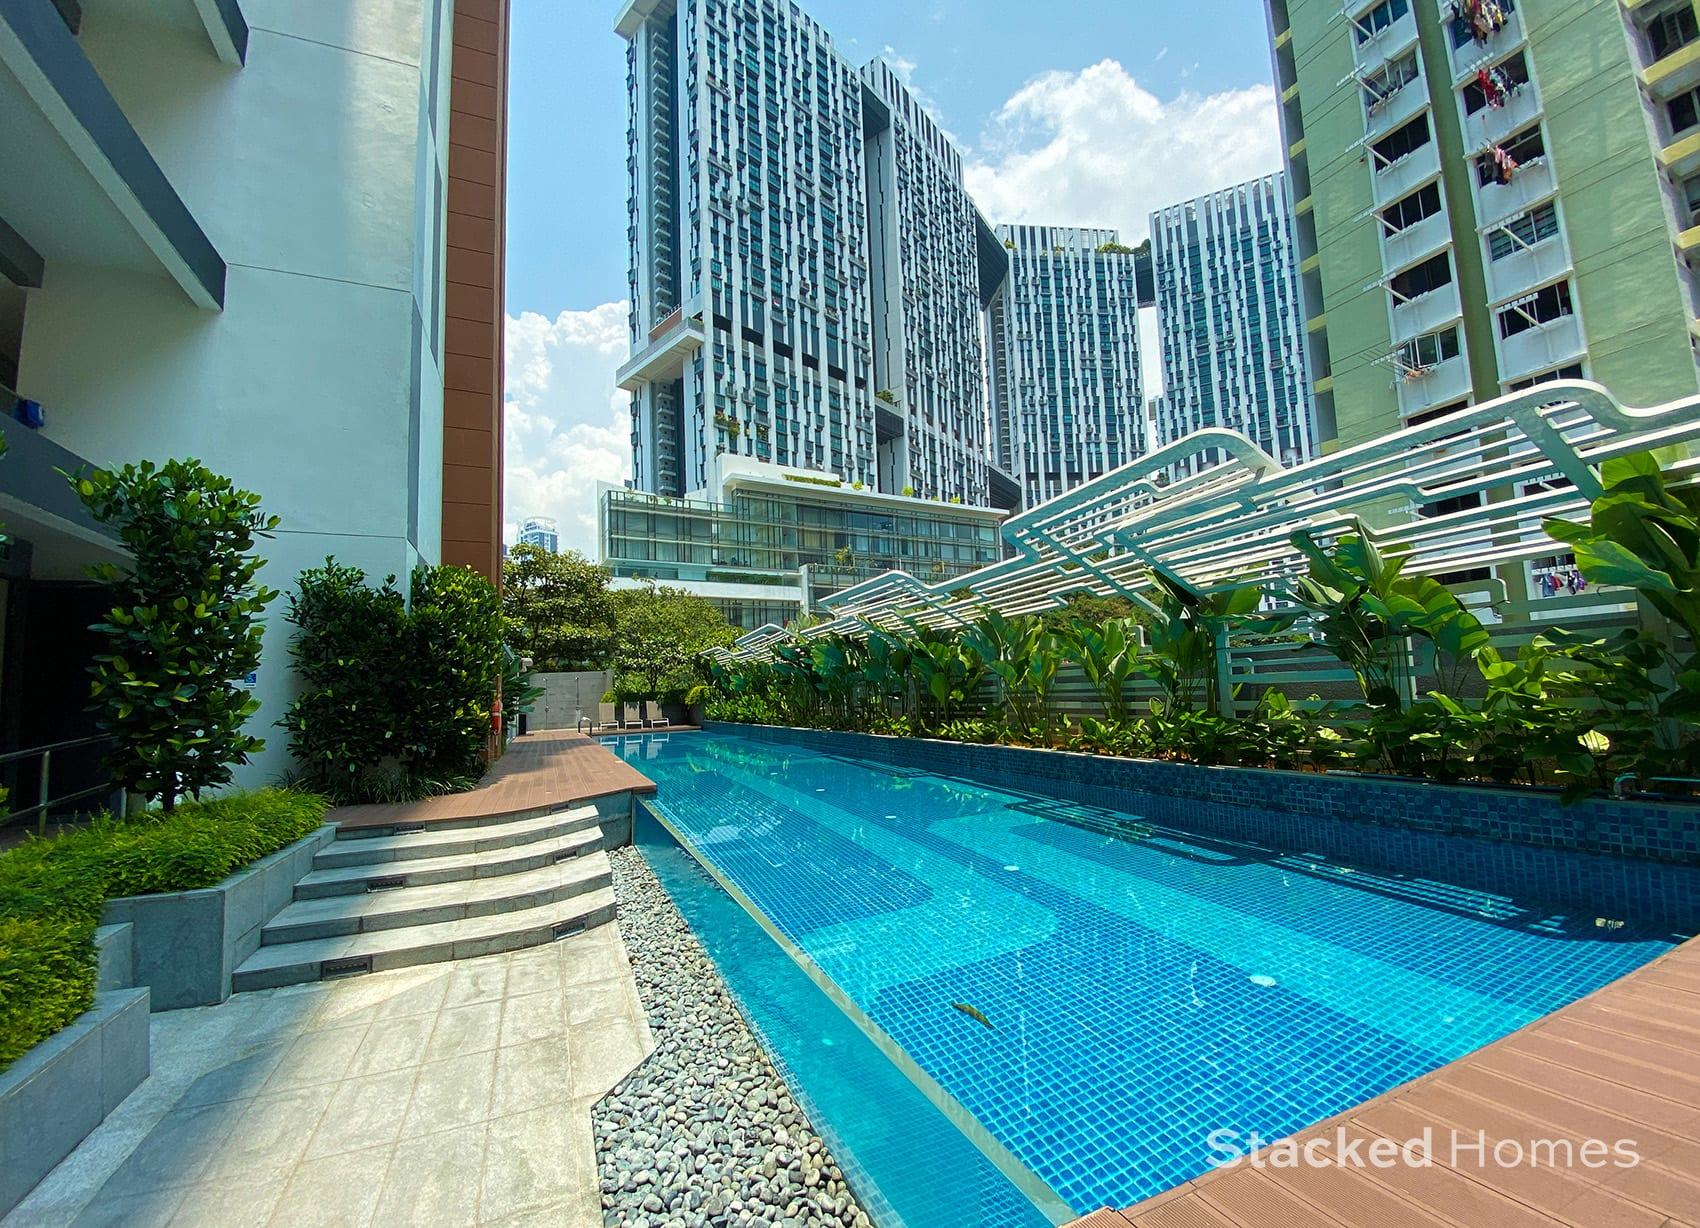 onze tanjong pagar lap pool glass